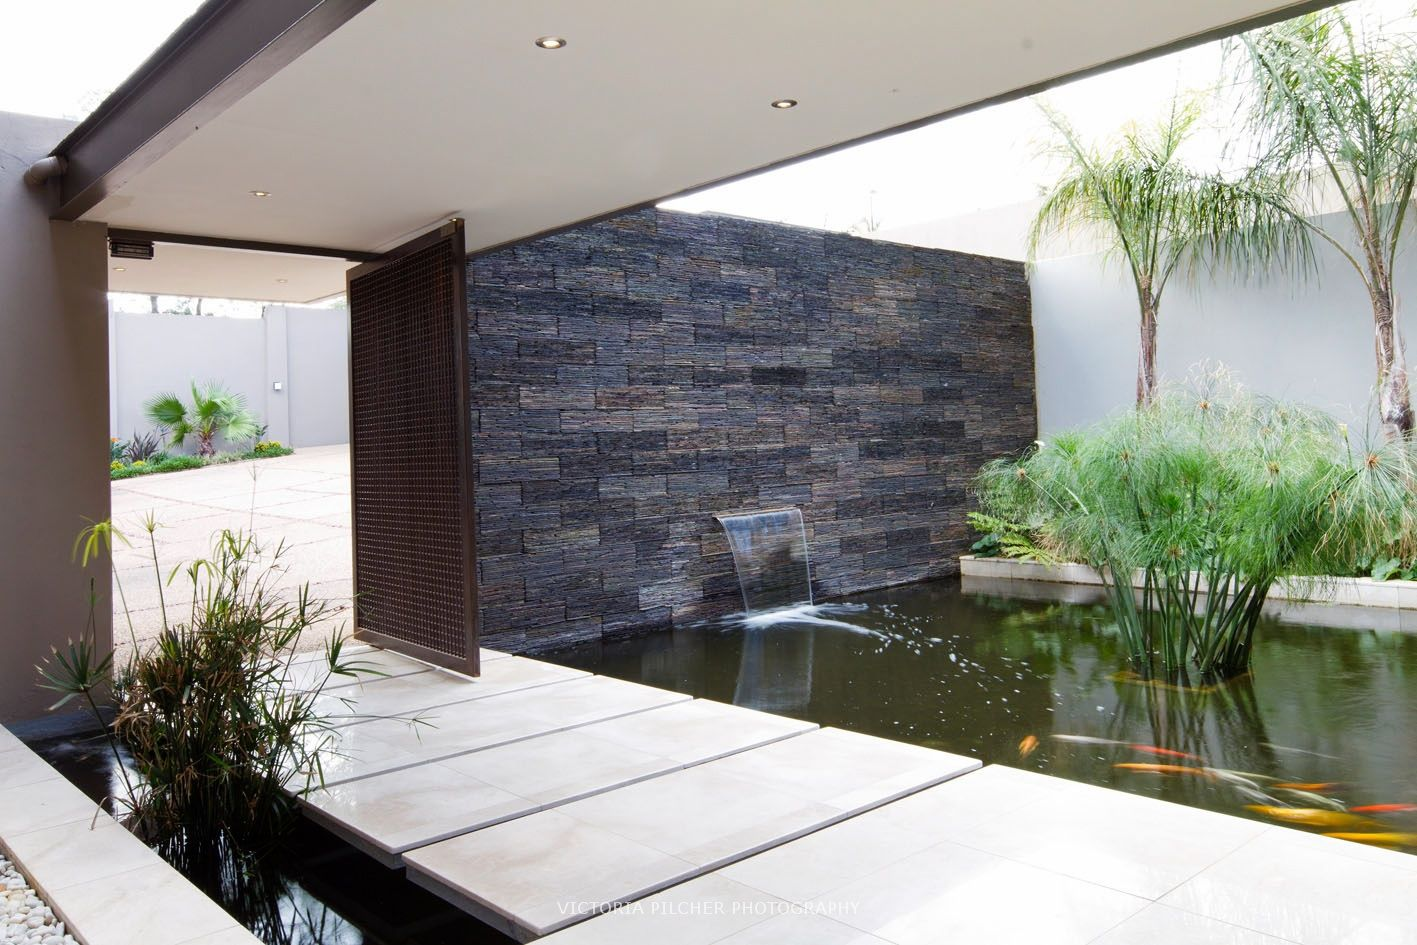 Pin On Architecture Victoria Pilcher Photography House Sed